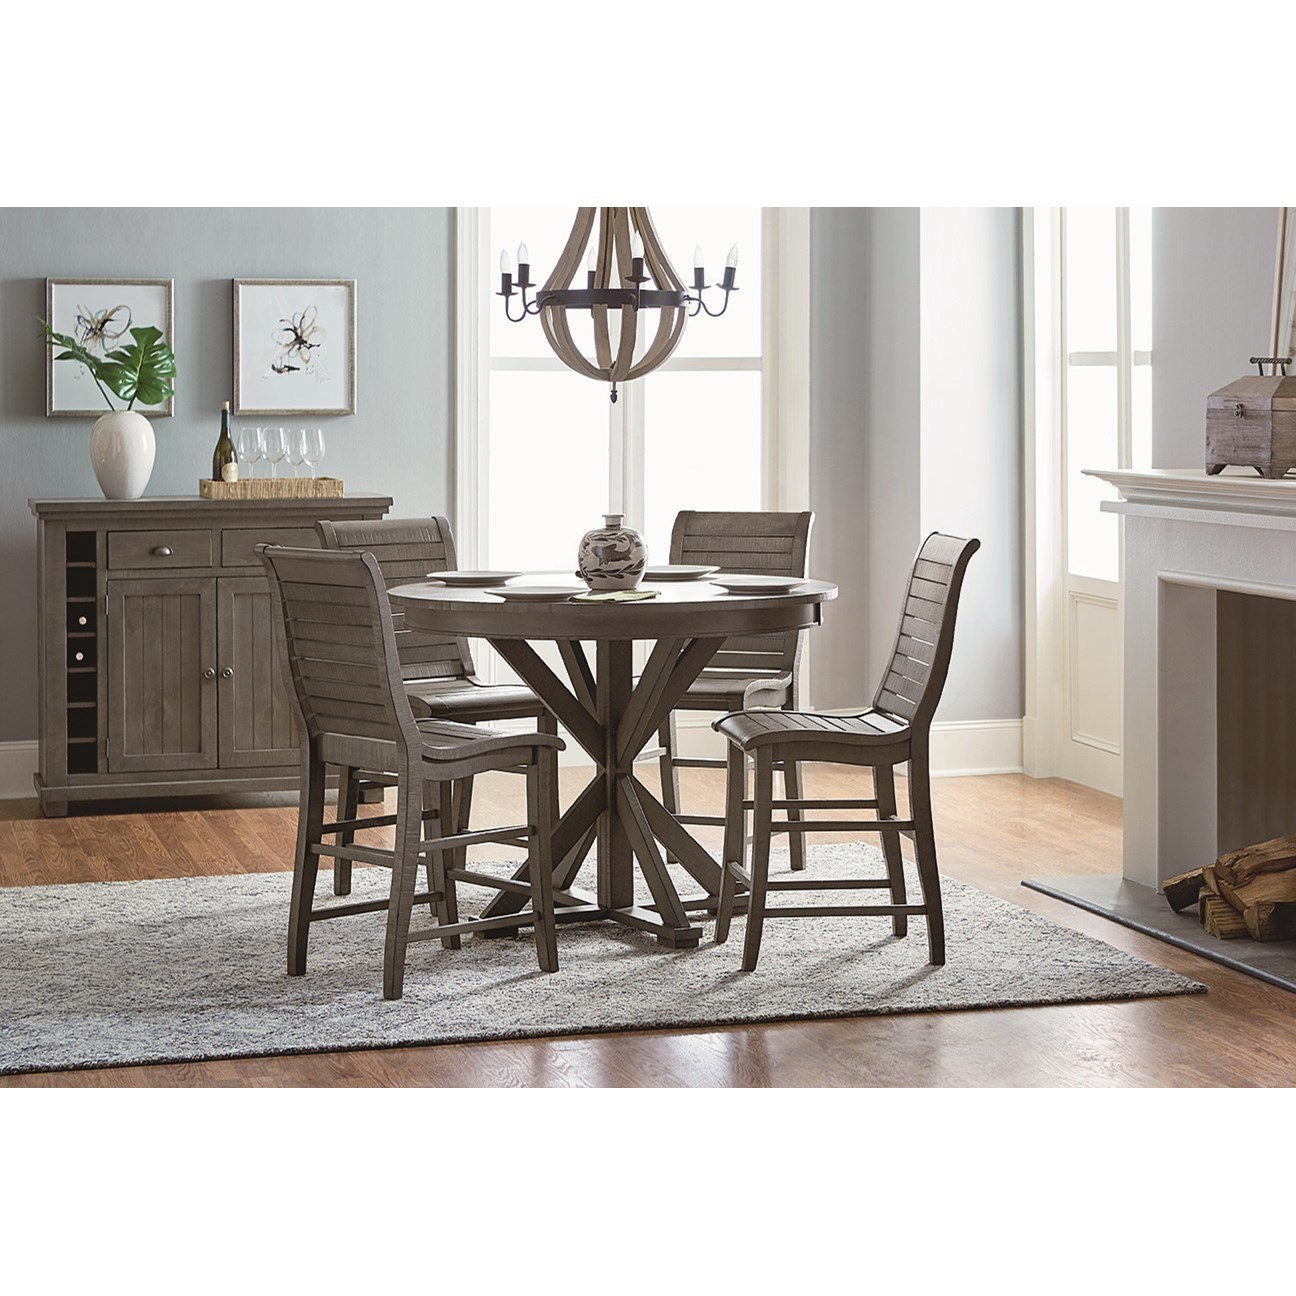 Progressive furniture willow dining casual dining room for Informal dining